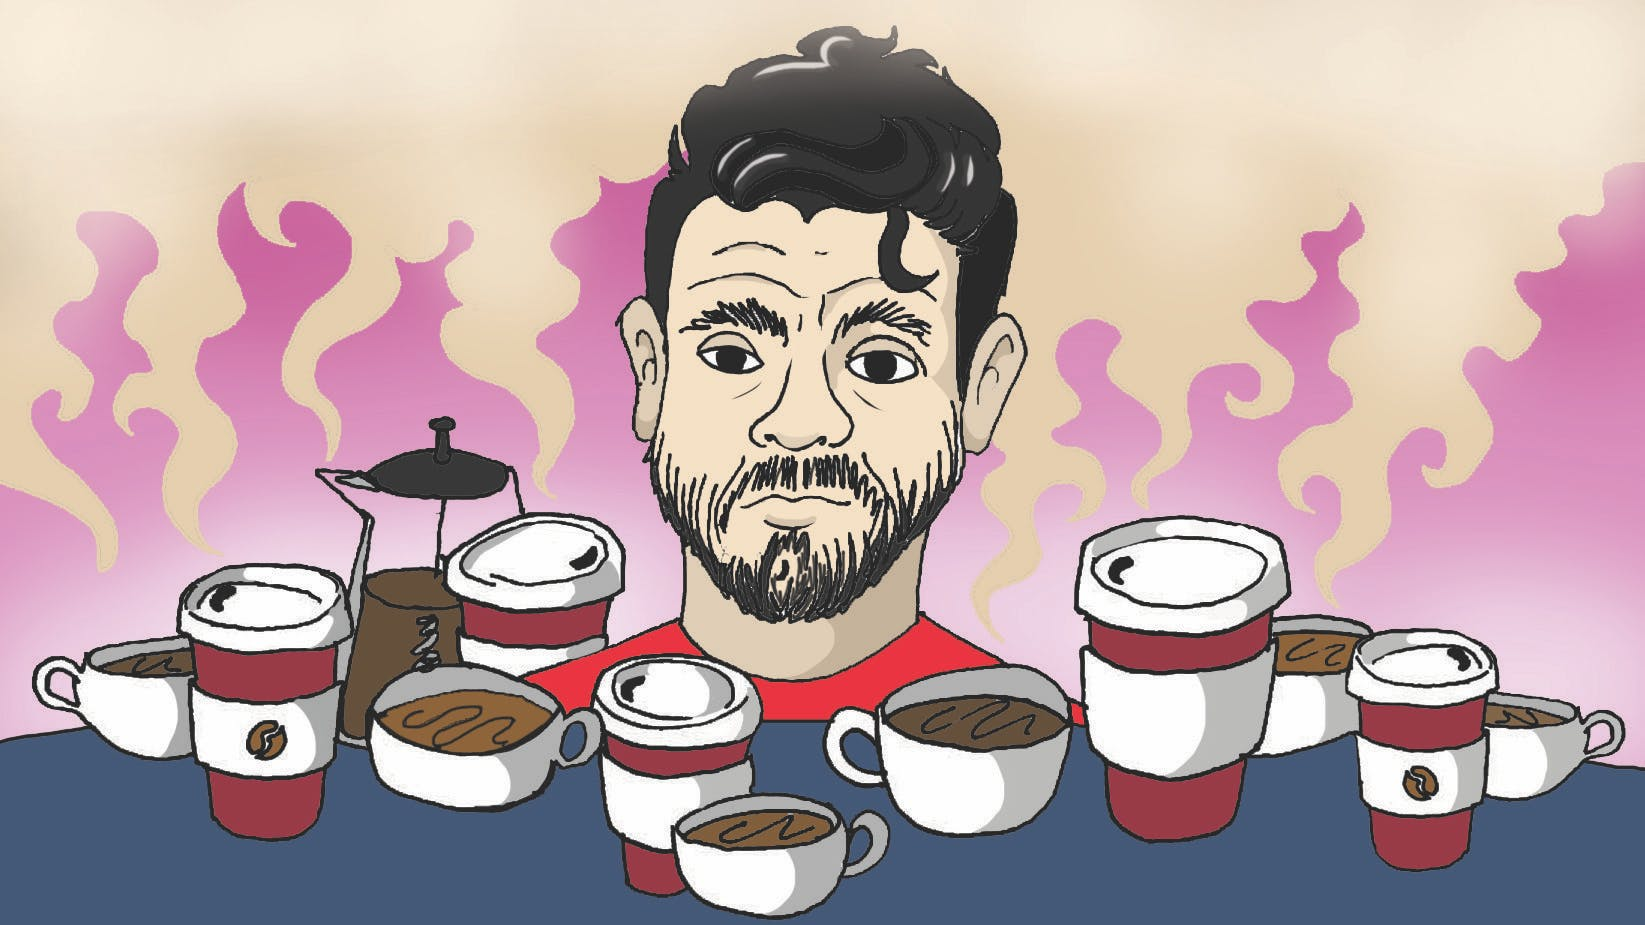 Which footballer makes the best coffee? - Diego Costa!